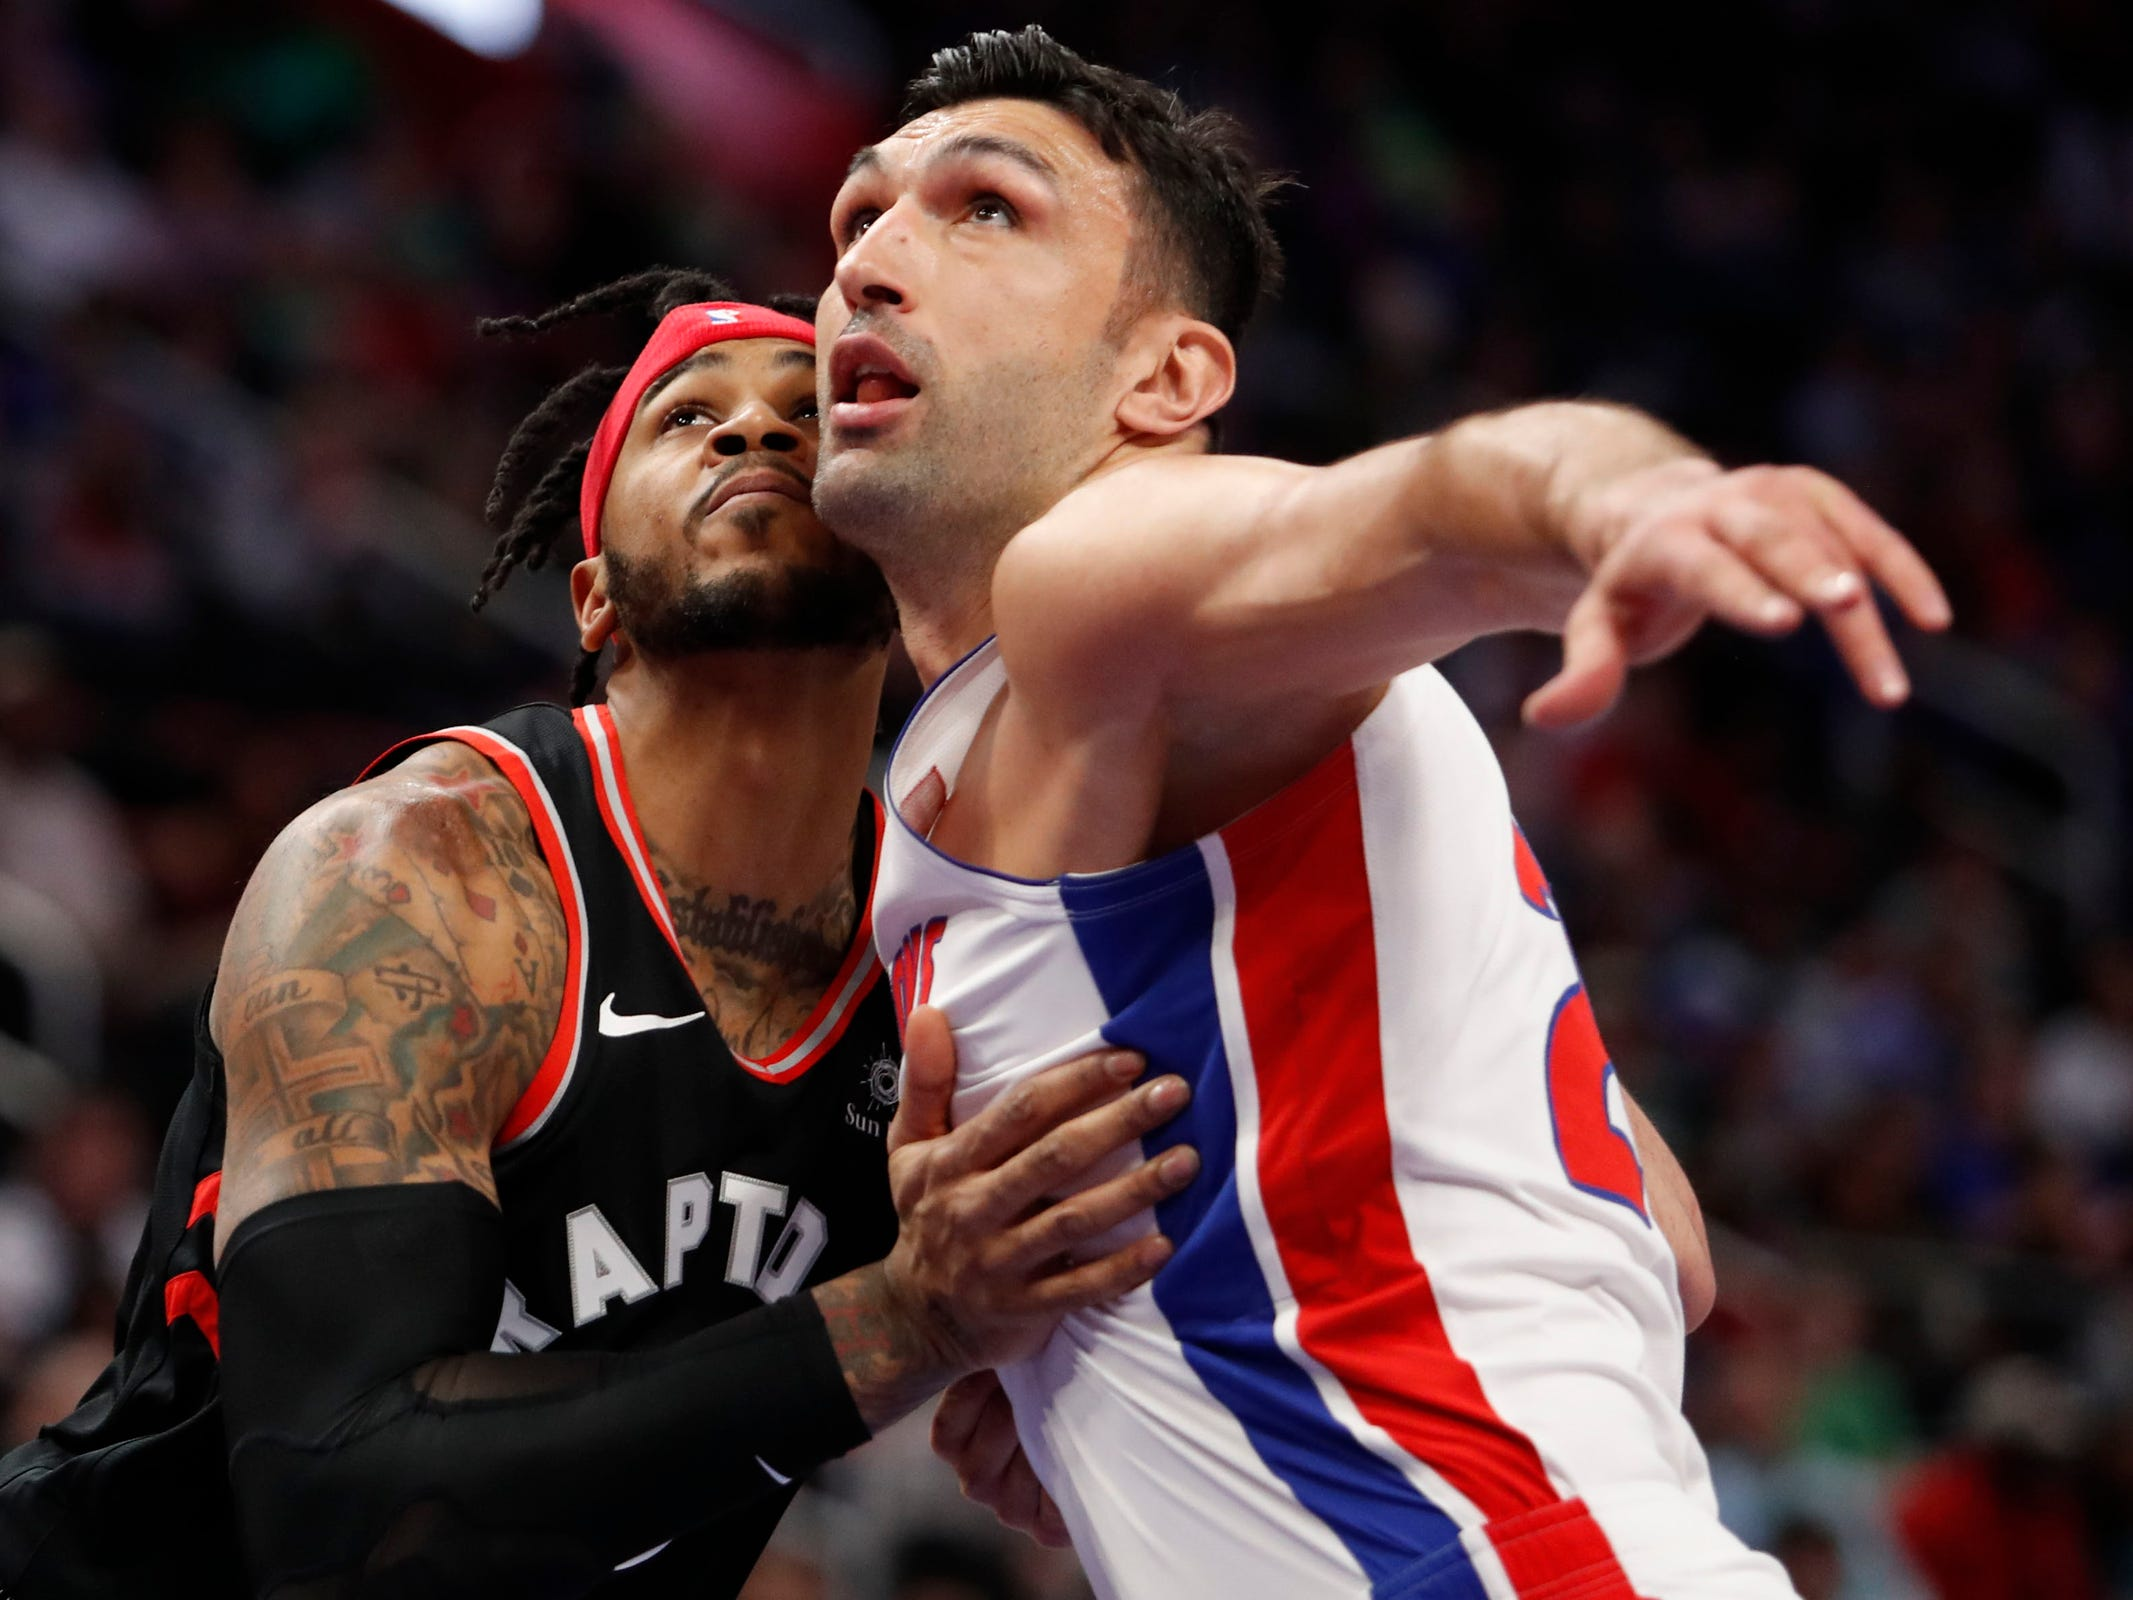 Toronto Raptors center Eric Moreland and Detroit Pistons center Zaza Pachulia fight for position during the first quarter at Little Caesars Arena, Sunday, March 17, 2019.